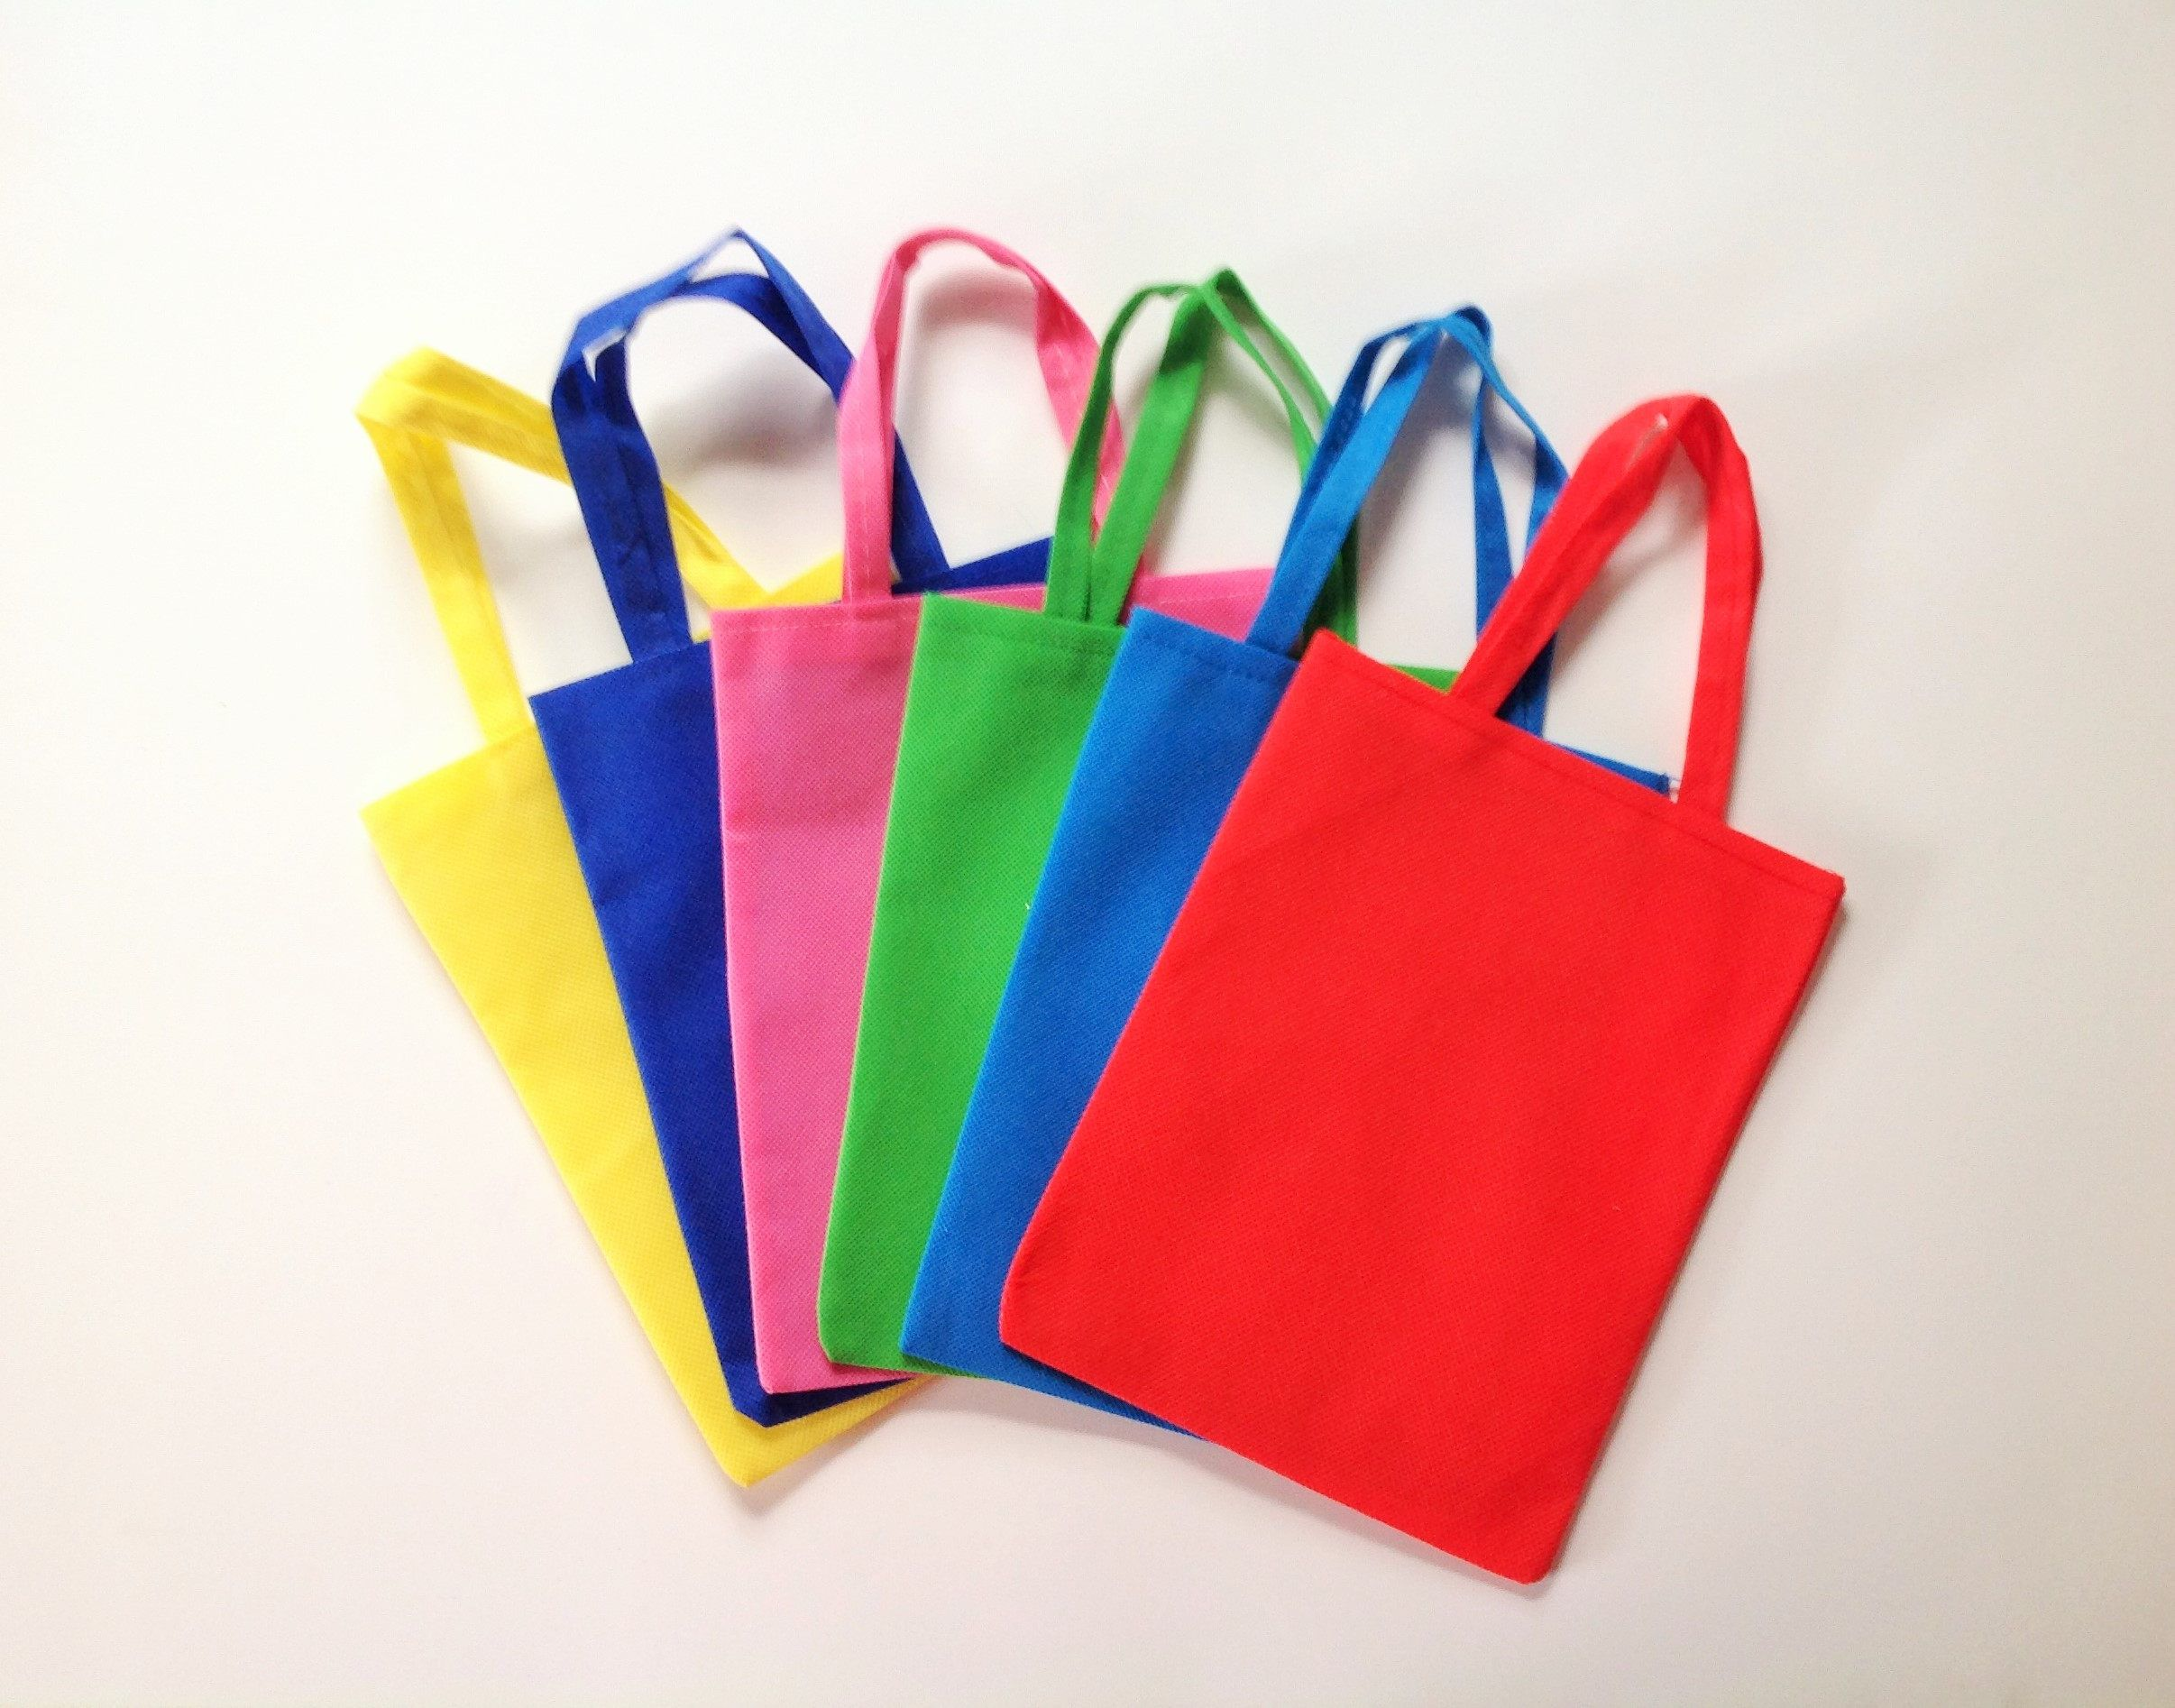 24 Pcs Small Party Bags 9 X7 Mini Tote Reusable Bag Favors Treat Candy Goo Plain Red Blue Green Yellow Rose By Miloscrafts On